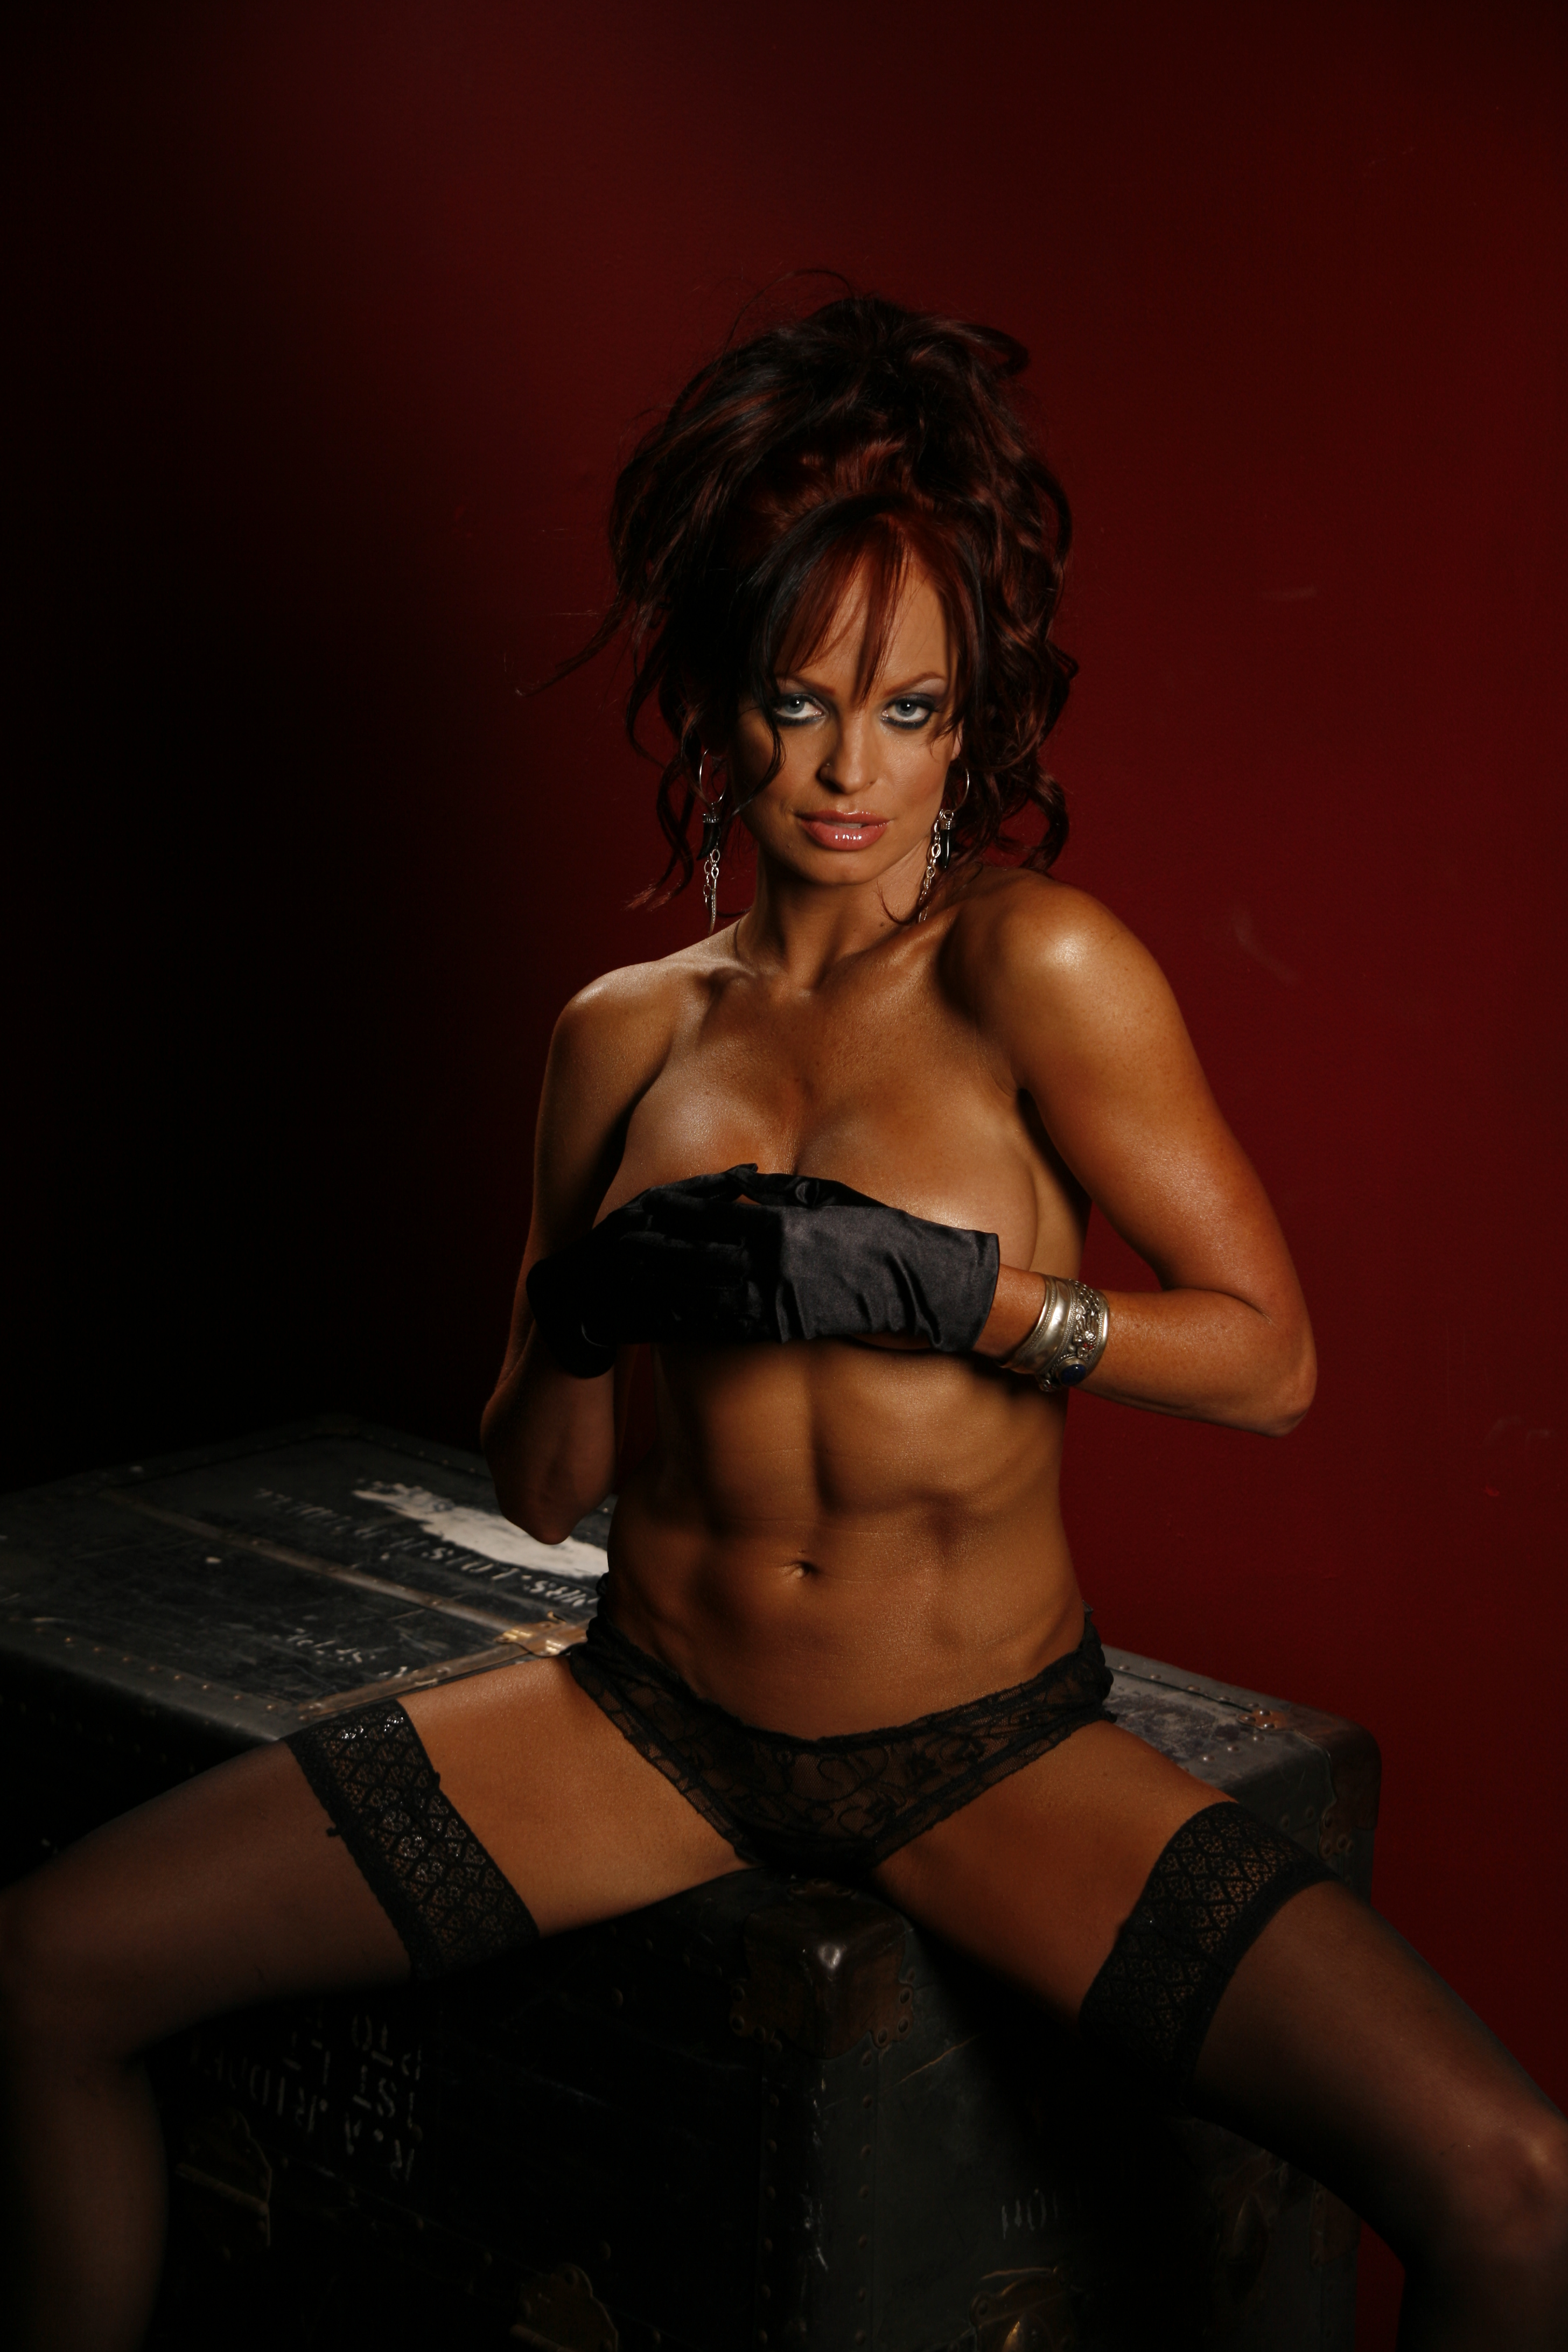 Exist? Certainly, naked christy hemme yes join